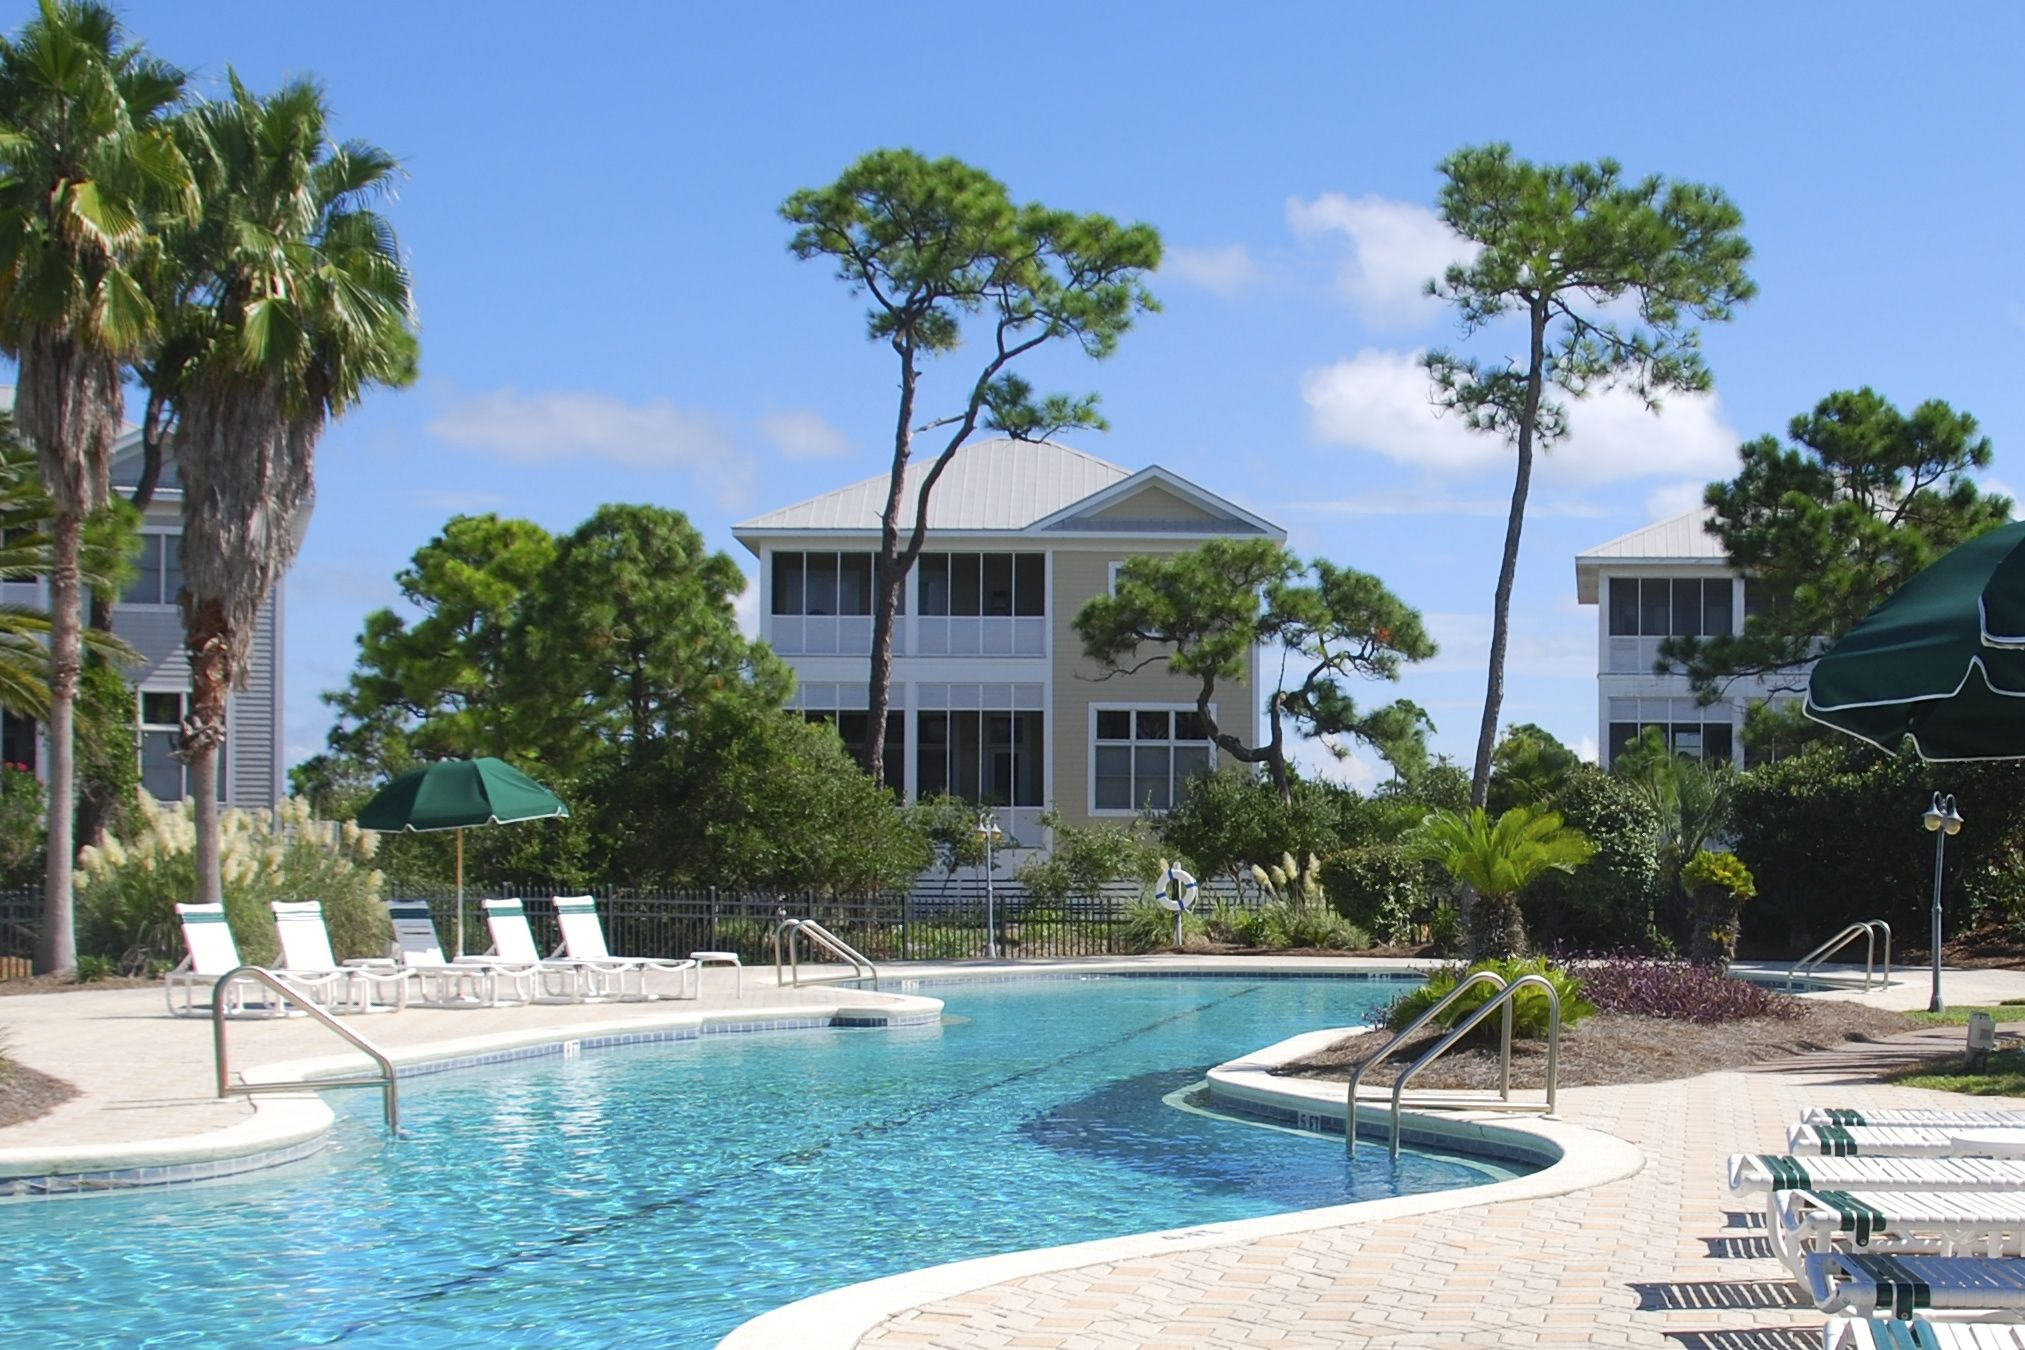 Isla Callada Beach House On St George Island Florida Large Pool With 50 Meter Lap Lane Is Surrounded By Lush Tropical Vegetation